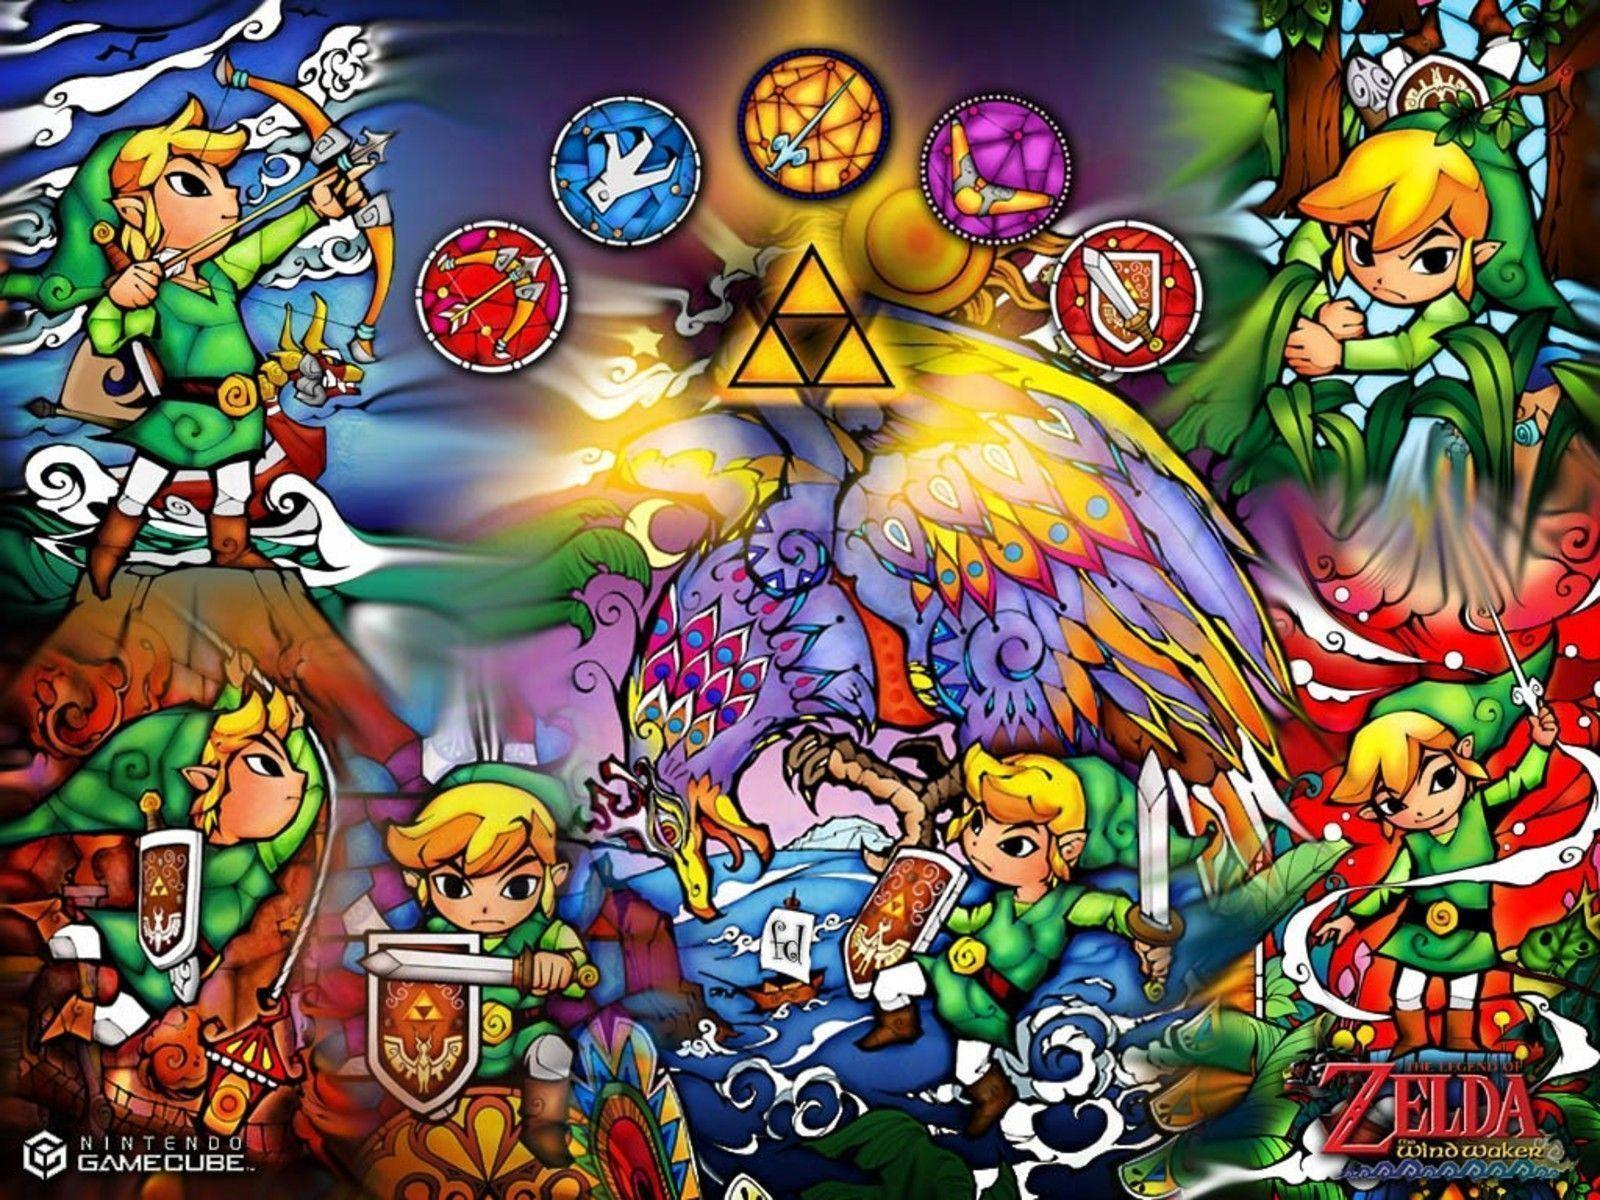 Image For > Legend Of Zelda Wind Waker Hd Wallpapers